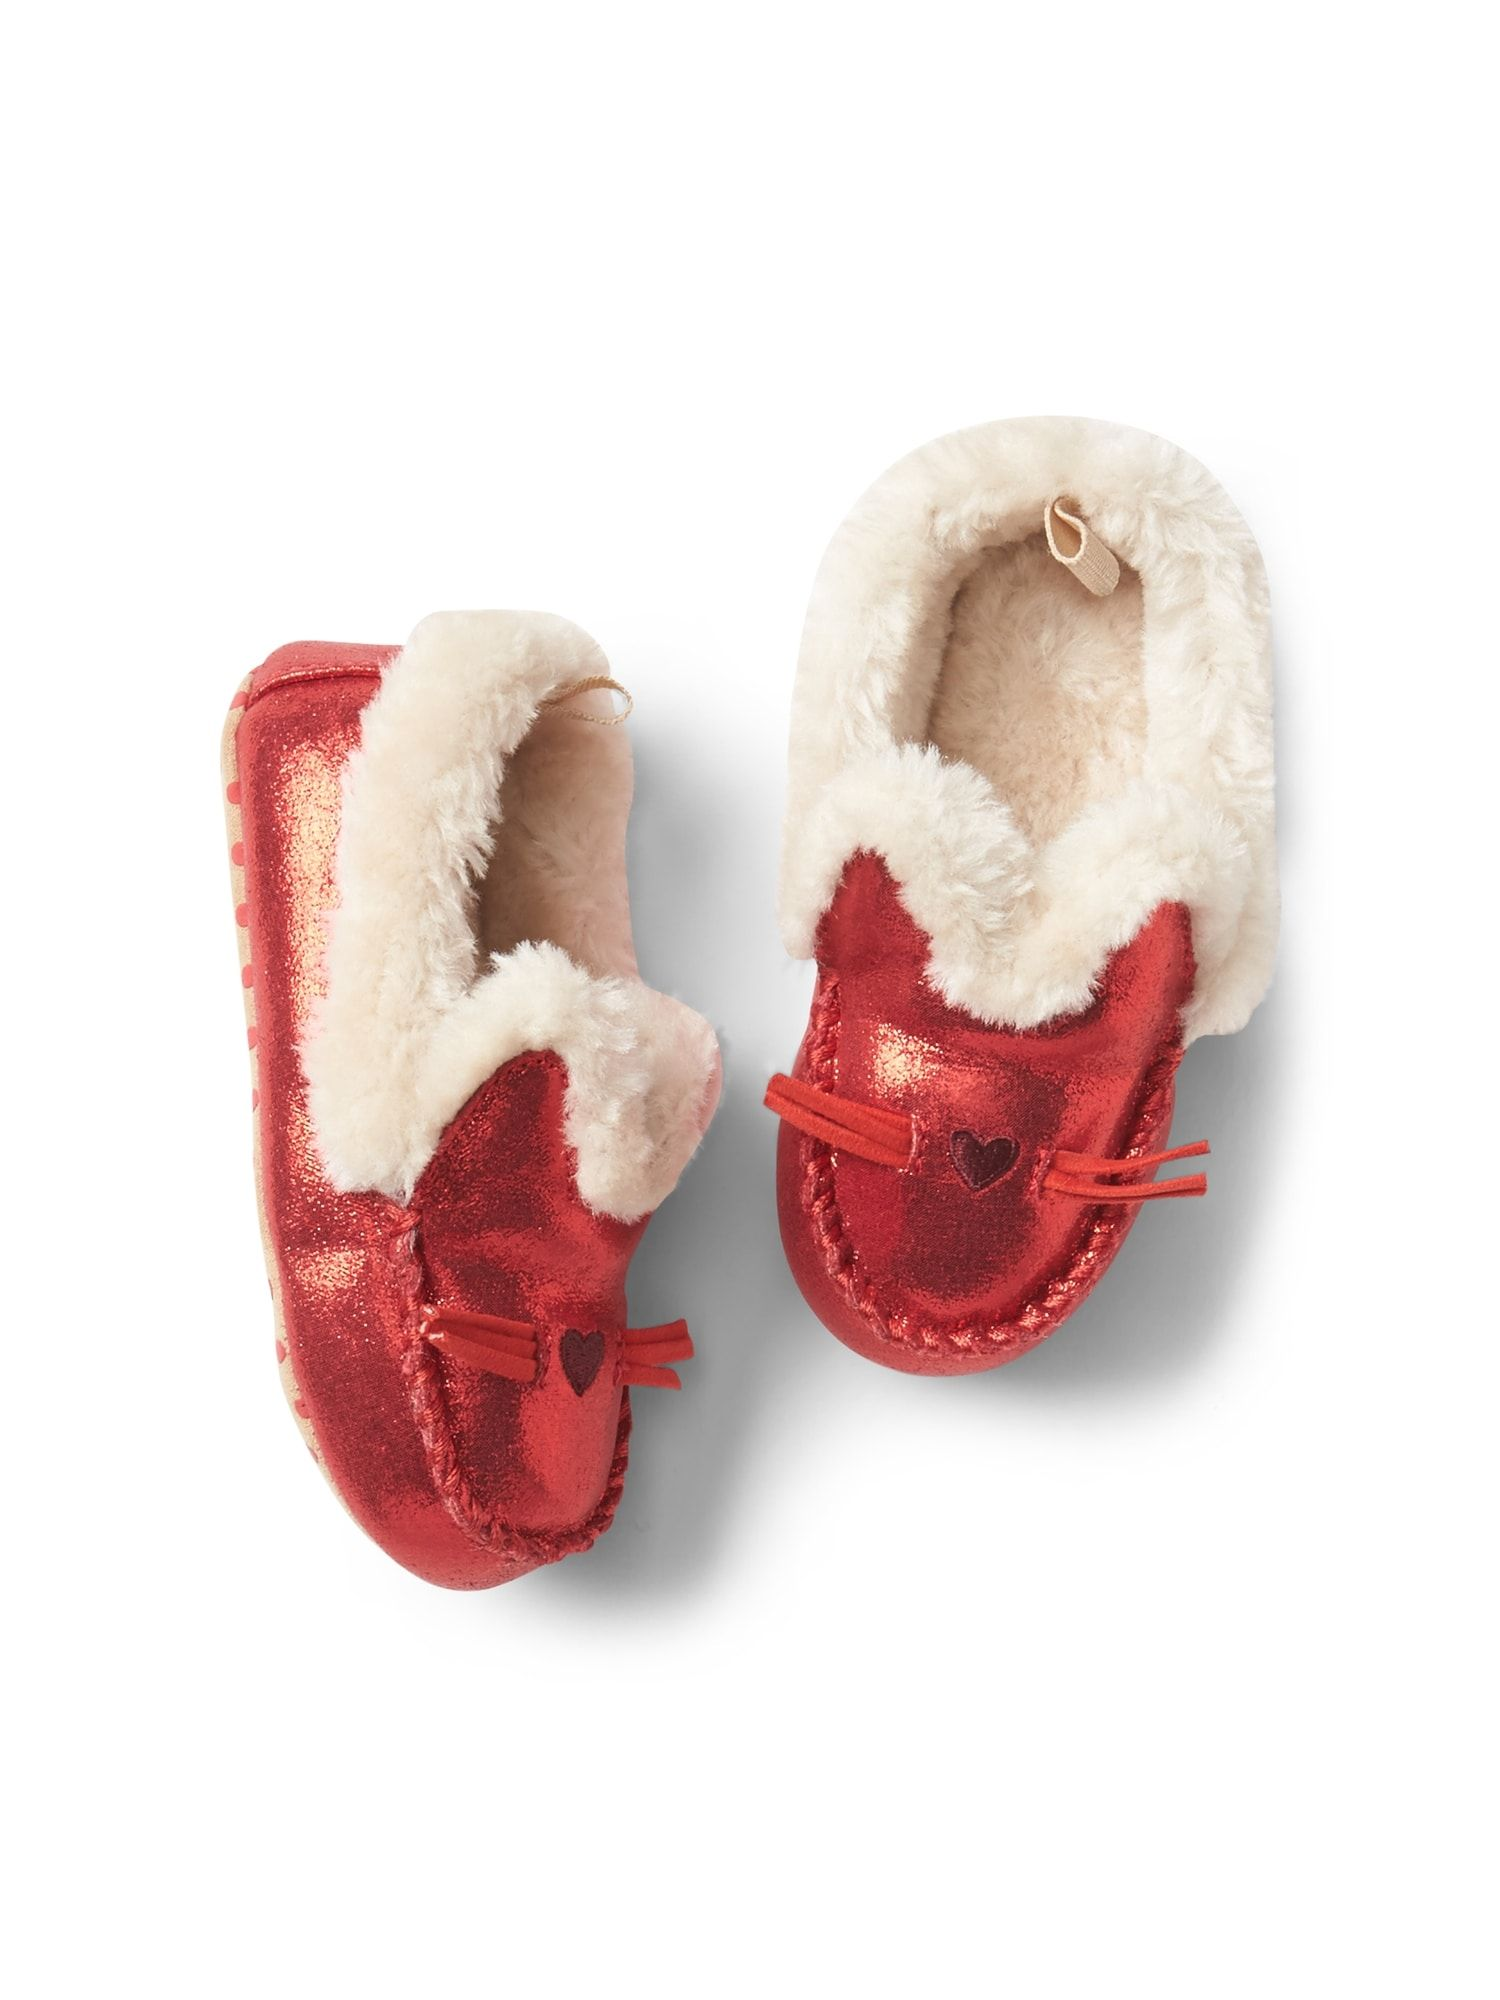 Baby kids clothes, Moccasins slippers